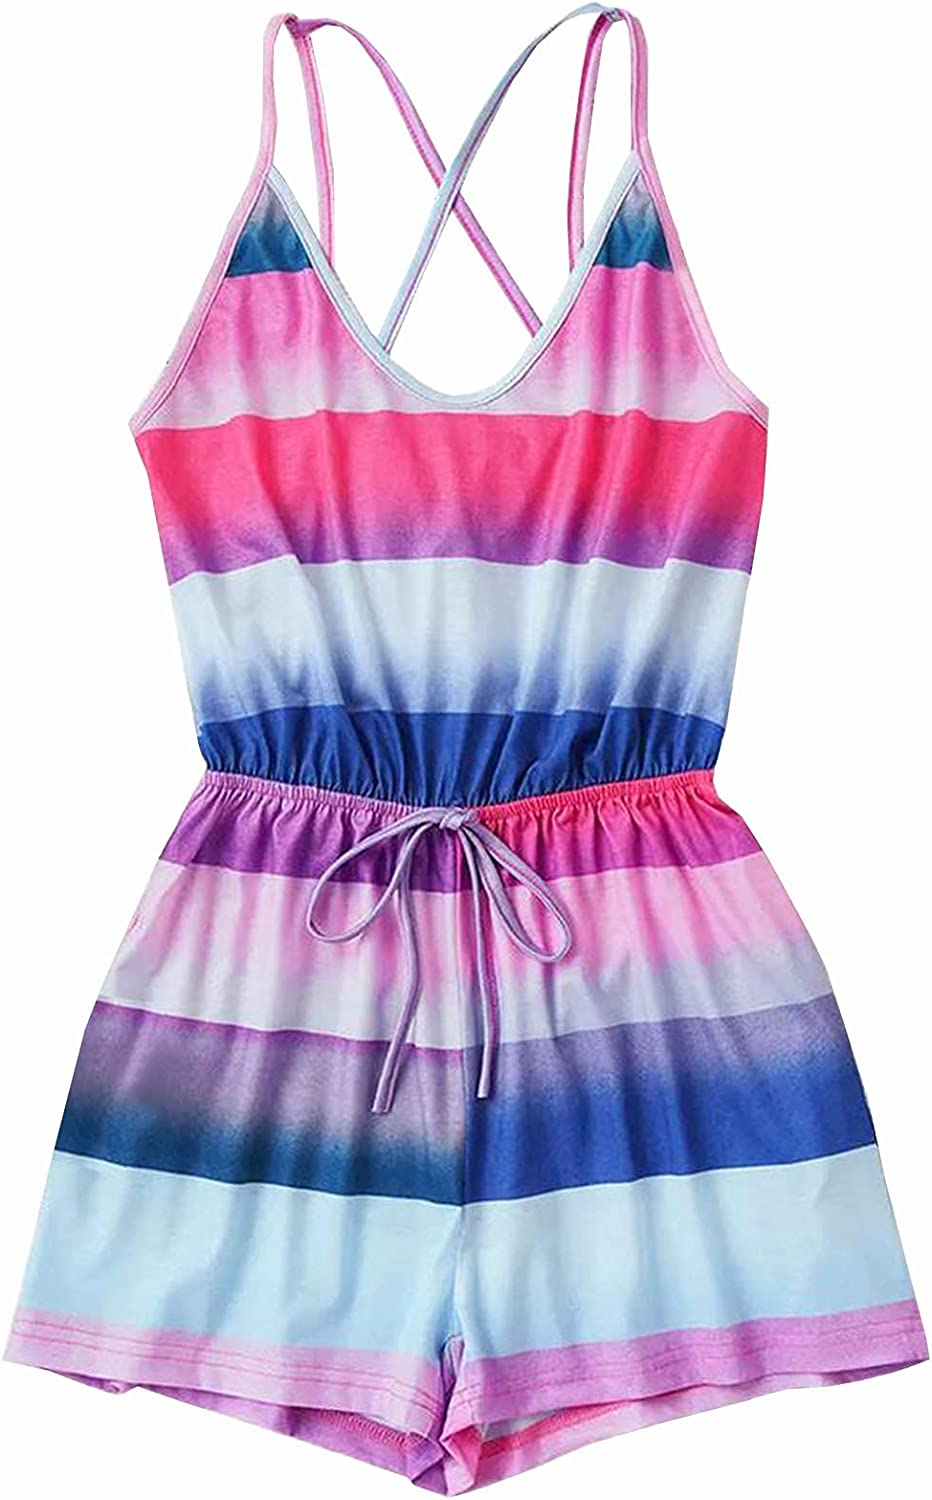 Misaky Women's Loose Fashion Leisure Striped Camisole Drawstring Jumpsuit Vacation Jumpsuit